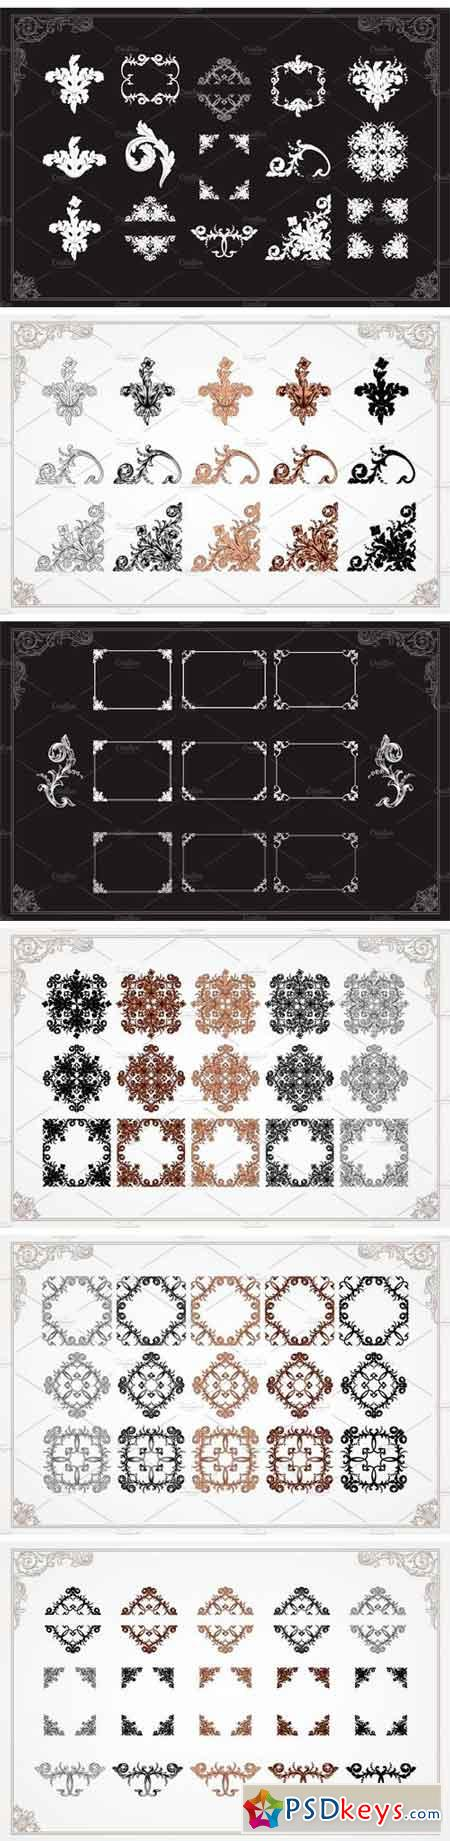 Ornament Elements for Decorate 1160832